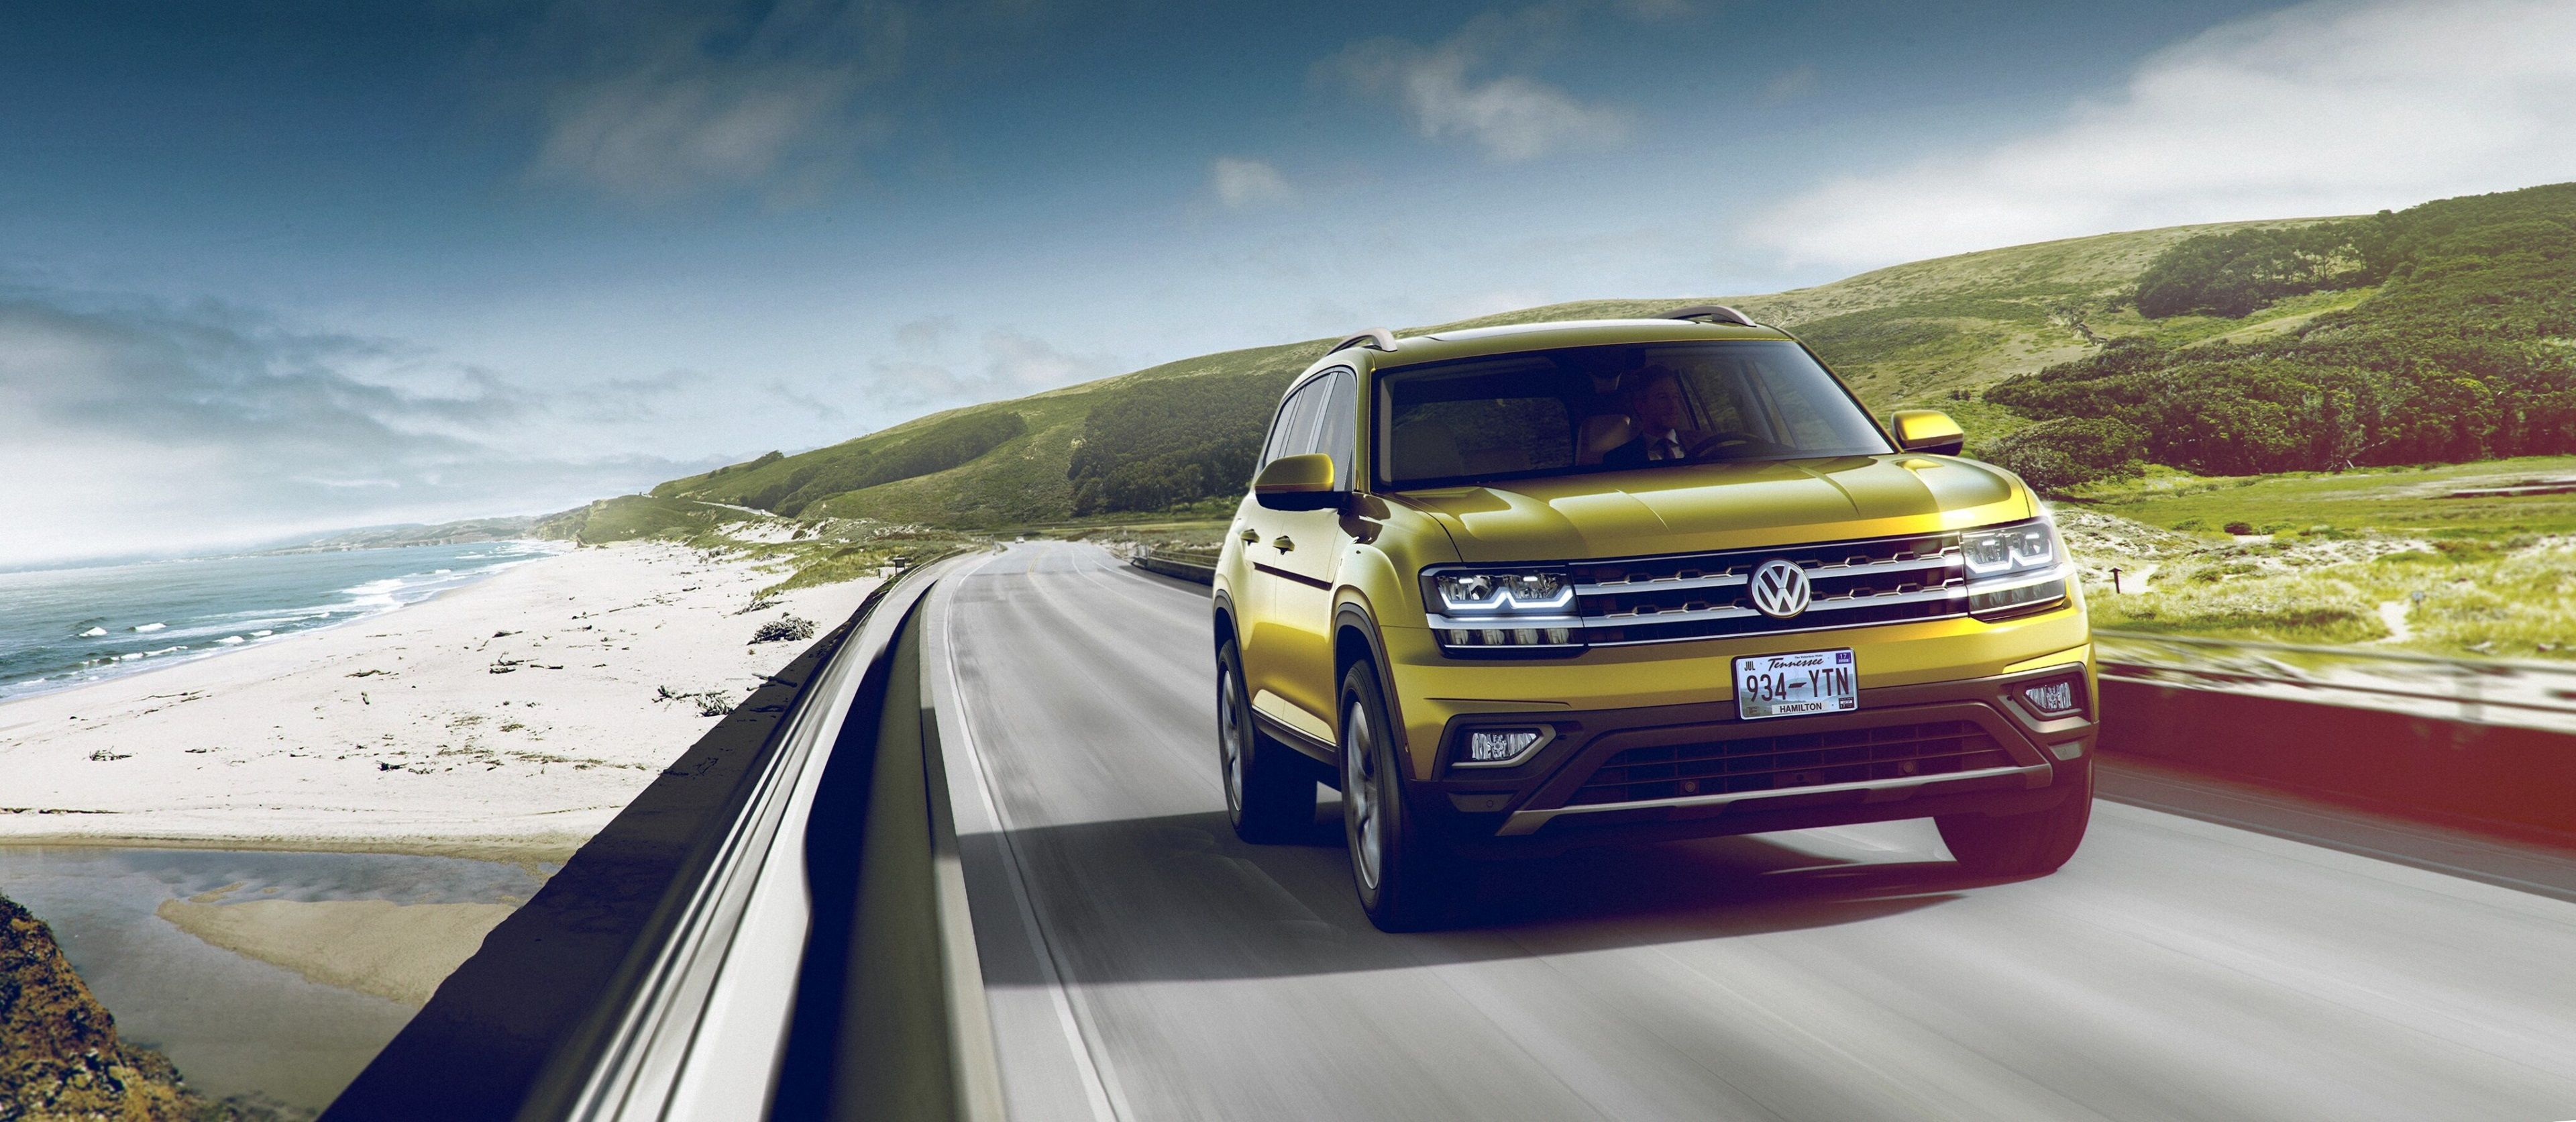 3840x1672 Volkswagen Atlas 4k Best Of Wallpaper For Desktop Volkswagen